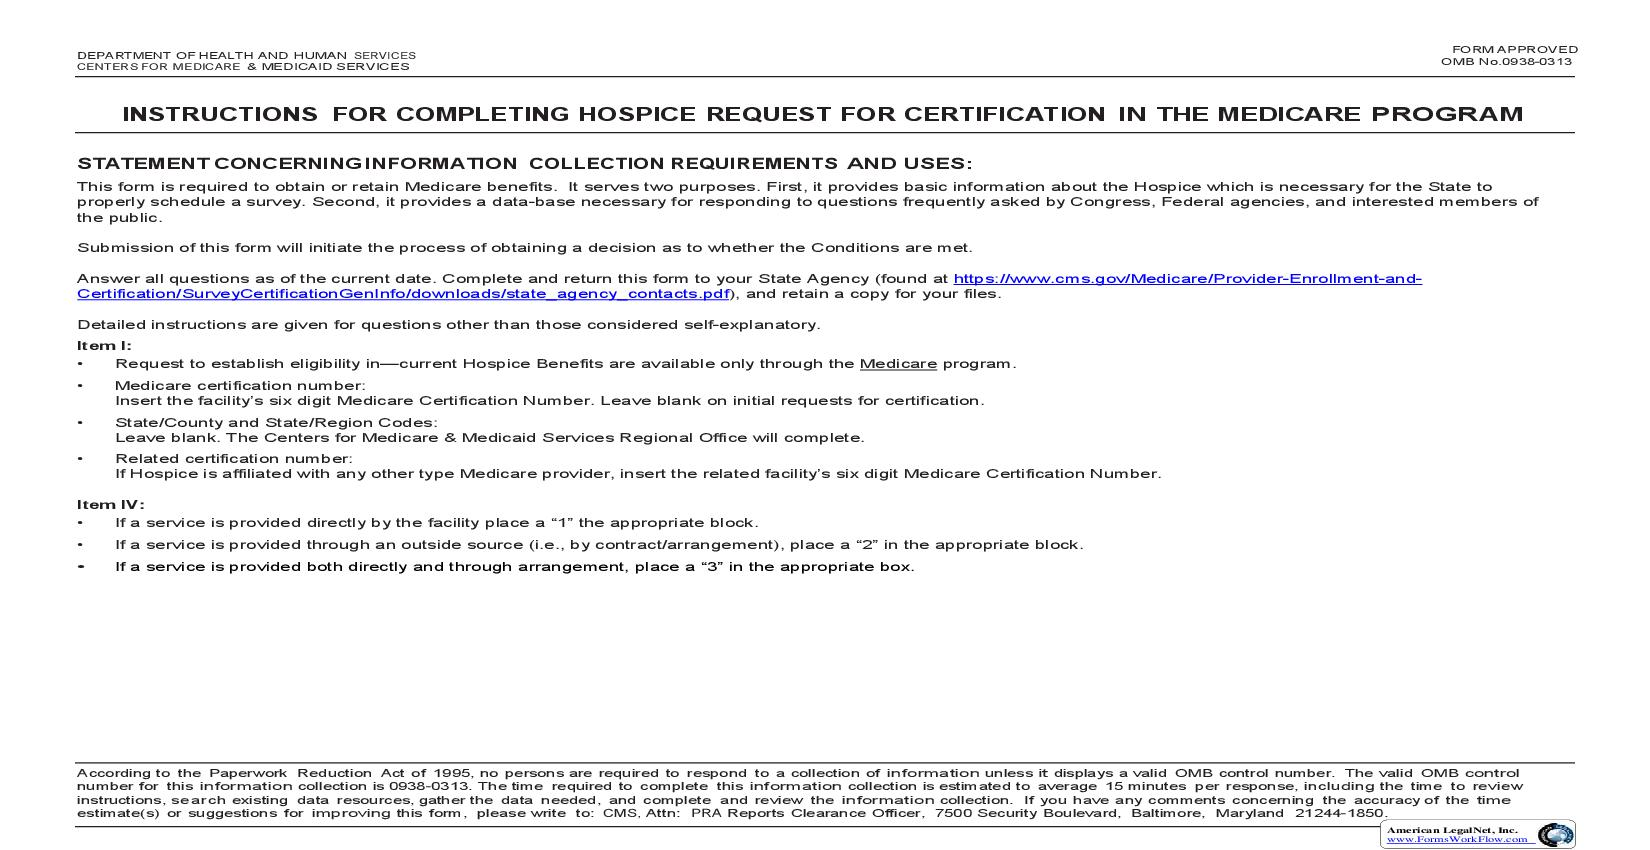 Hospice Request For Certification In The Medicare Program {CMS-417}   Pdf Fpdf Doc Docx   Official Federal Forms